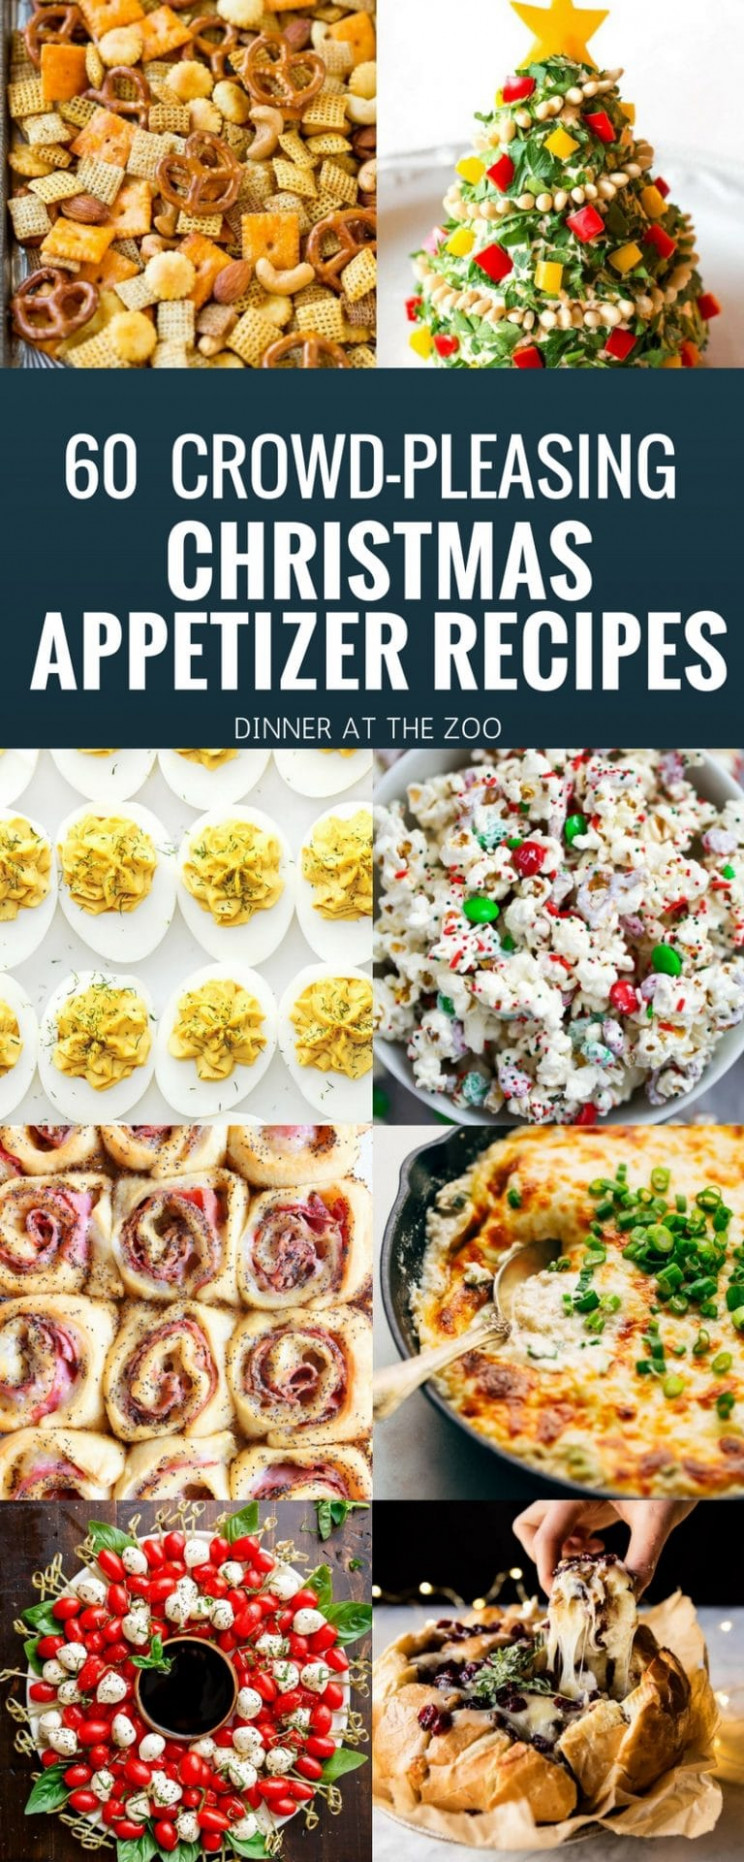 13 Christmas Appetizer Recipes - Dinner At The Zoo - Dinner At The Zoo Recipes